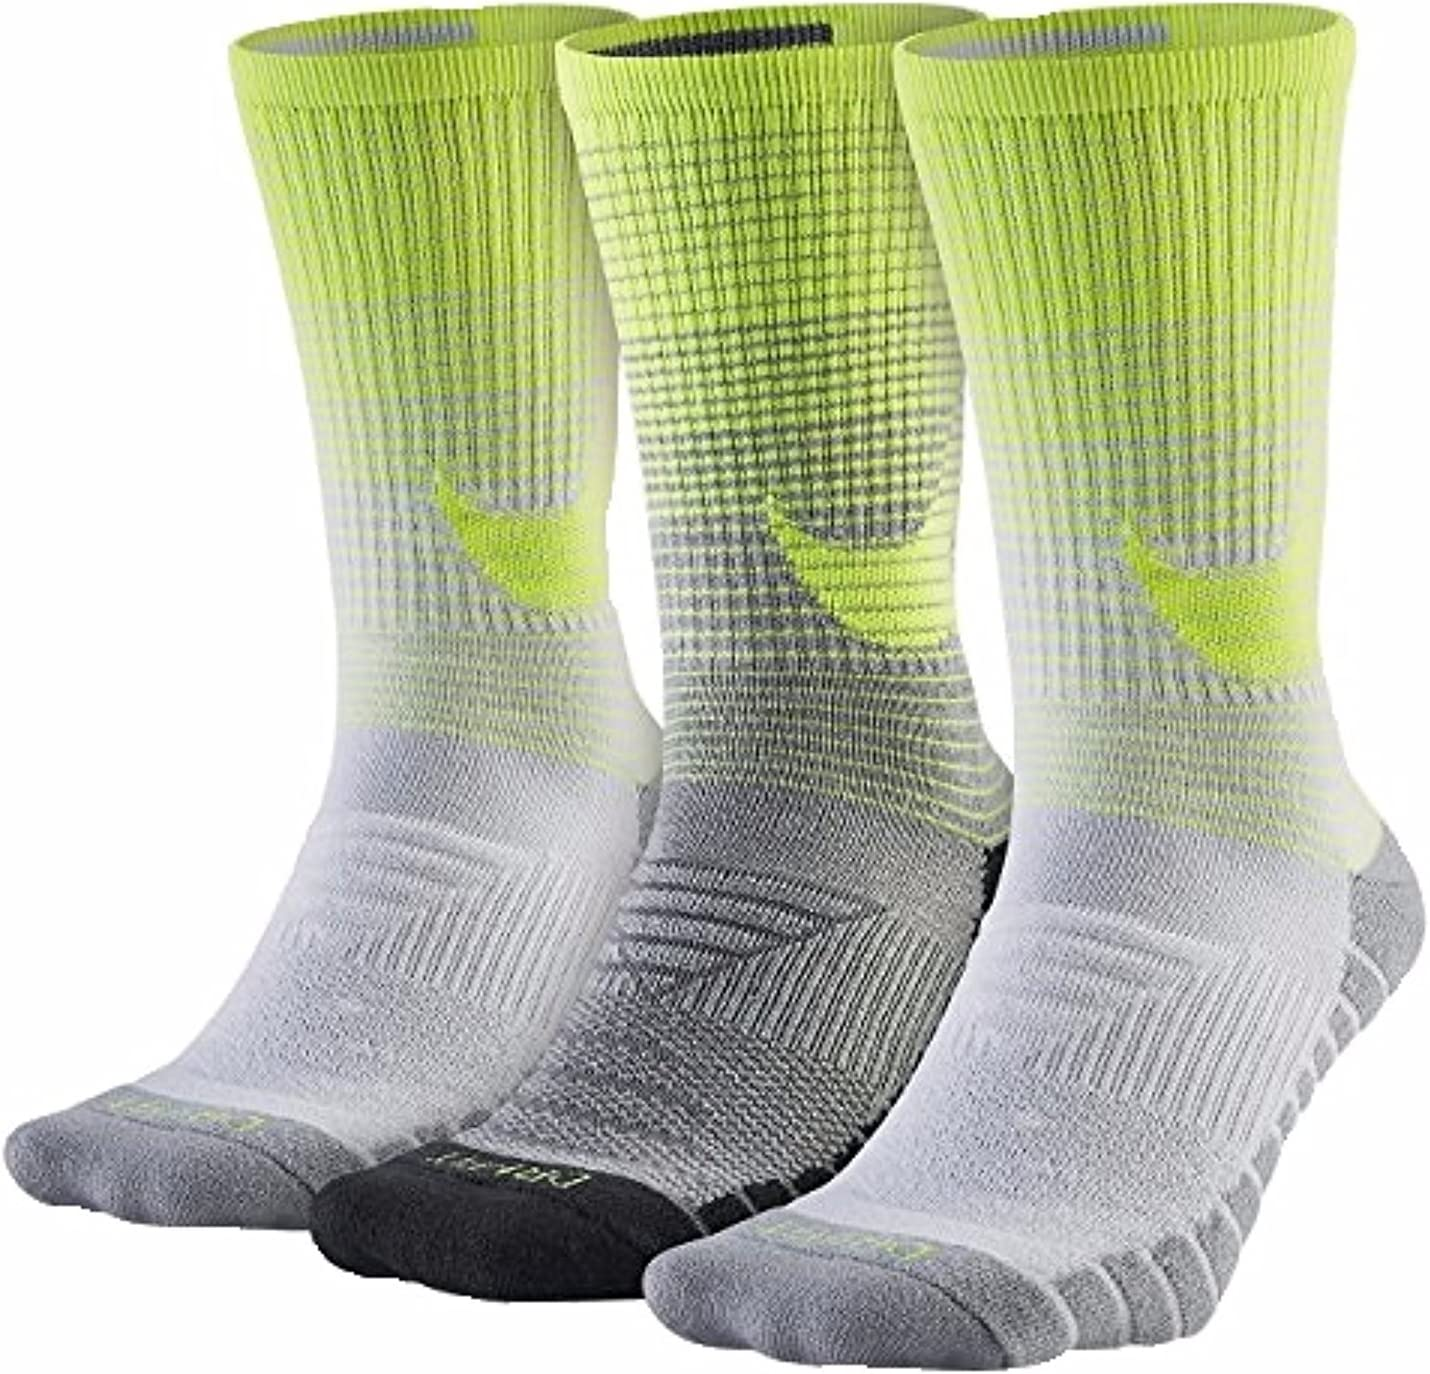 Mens Nike 3-pack Dri-FIT Swoosh HBR Performance Crew Socks,LARGE 8-12